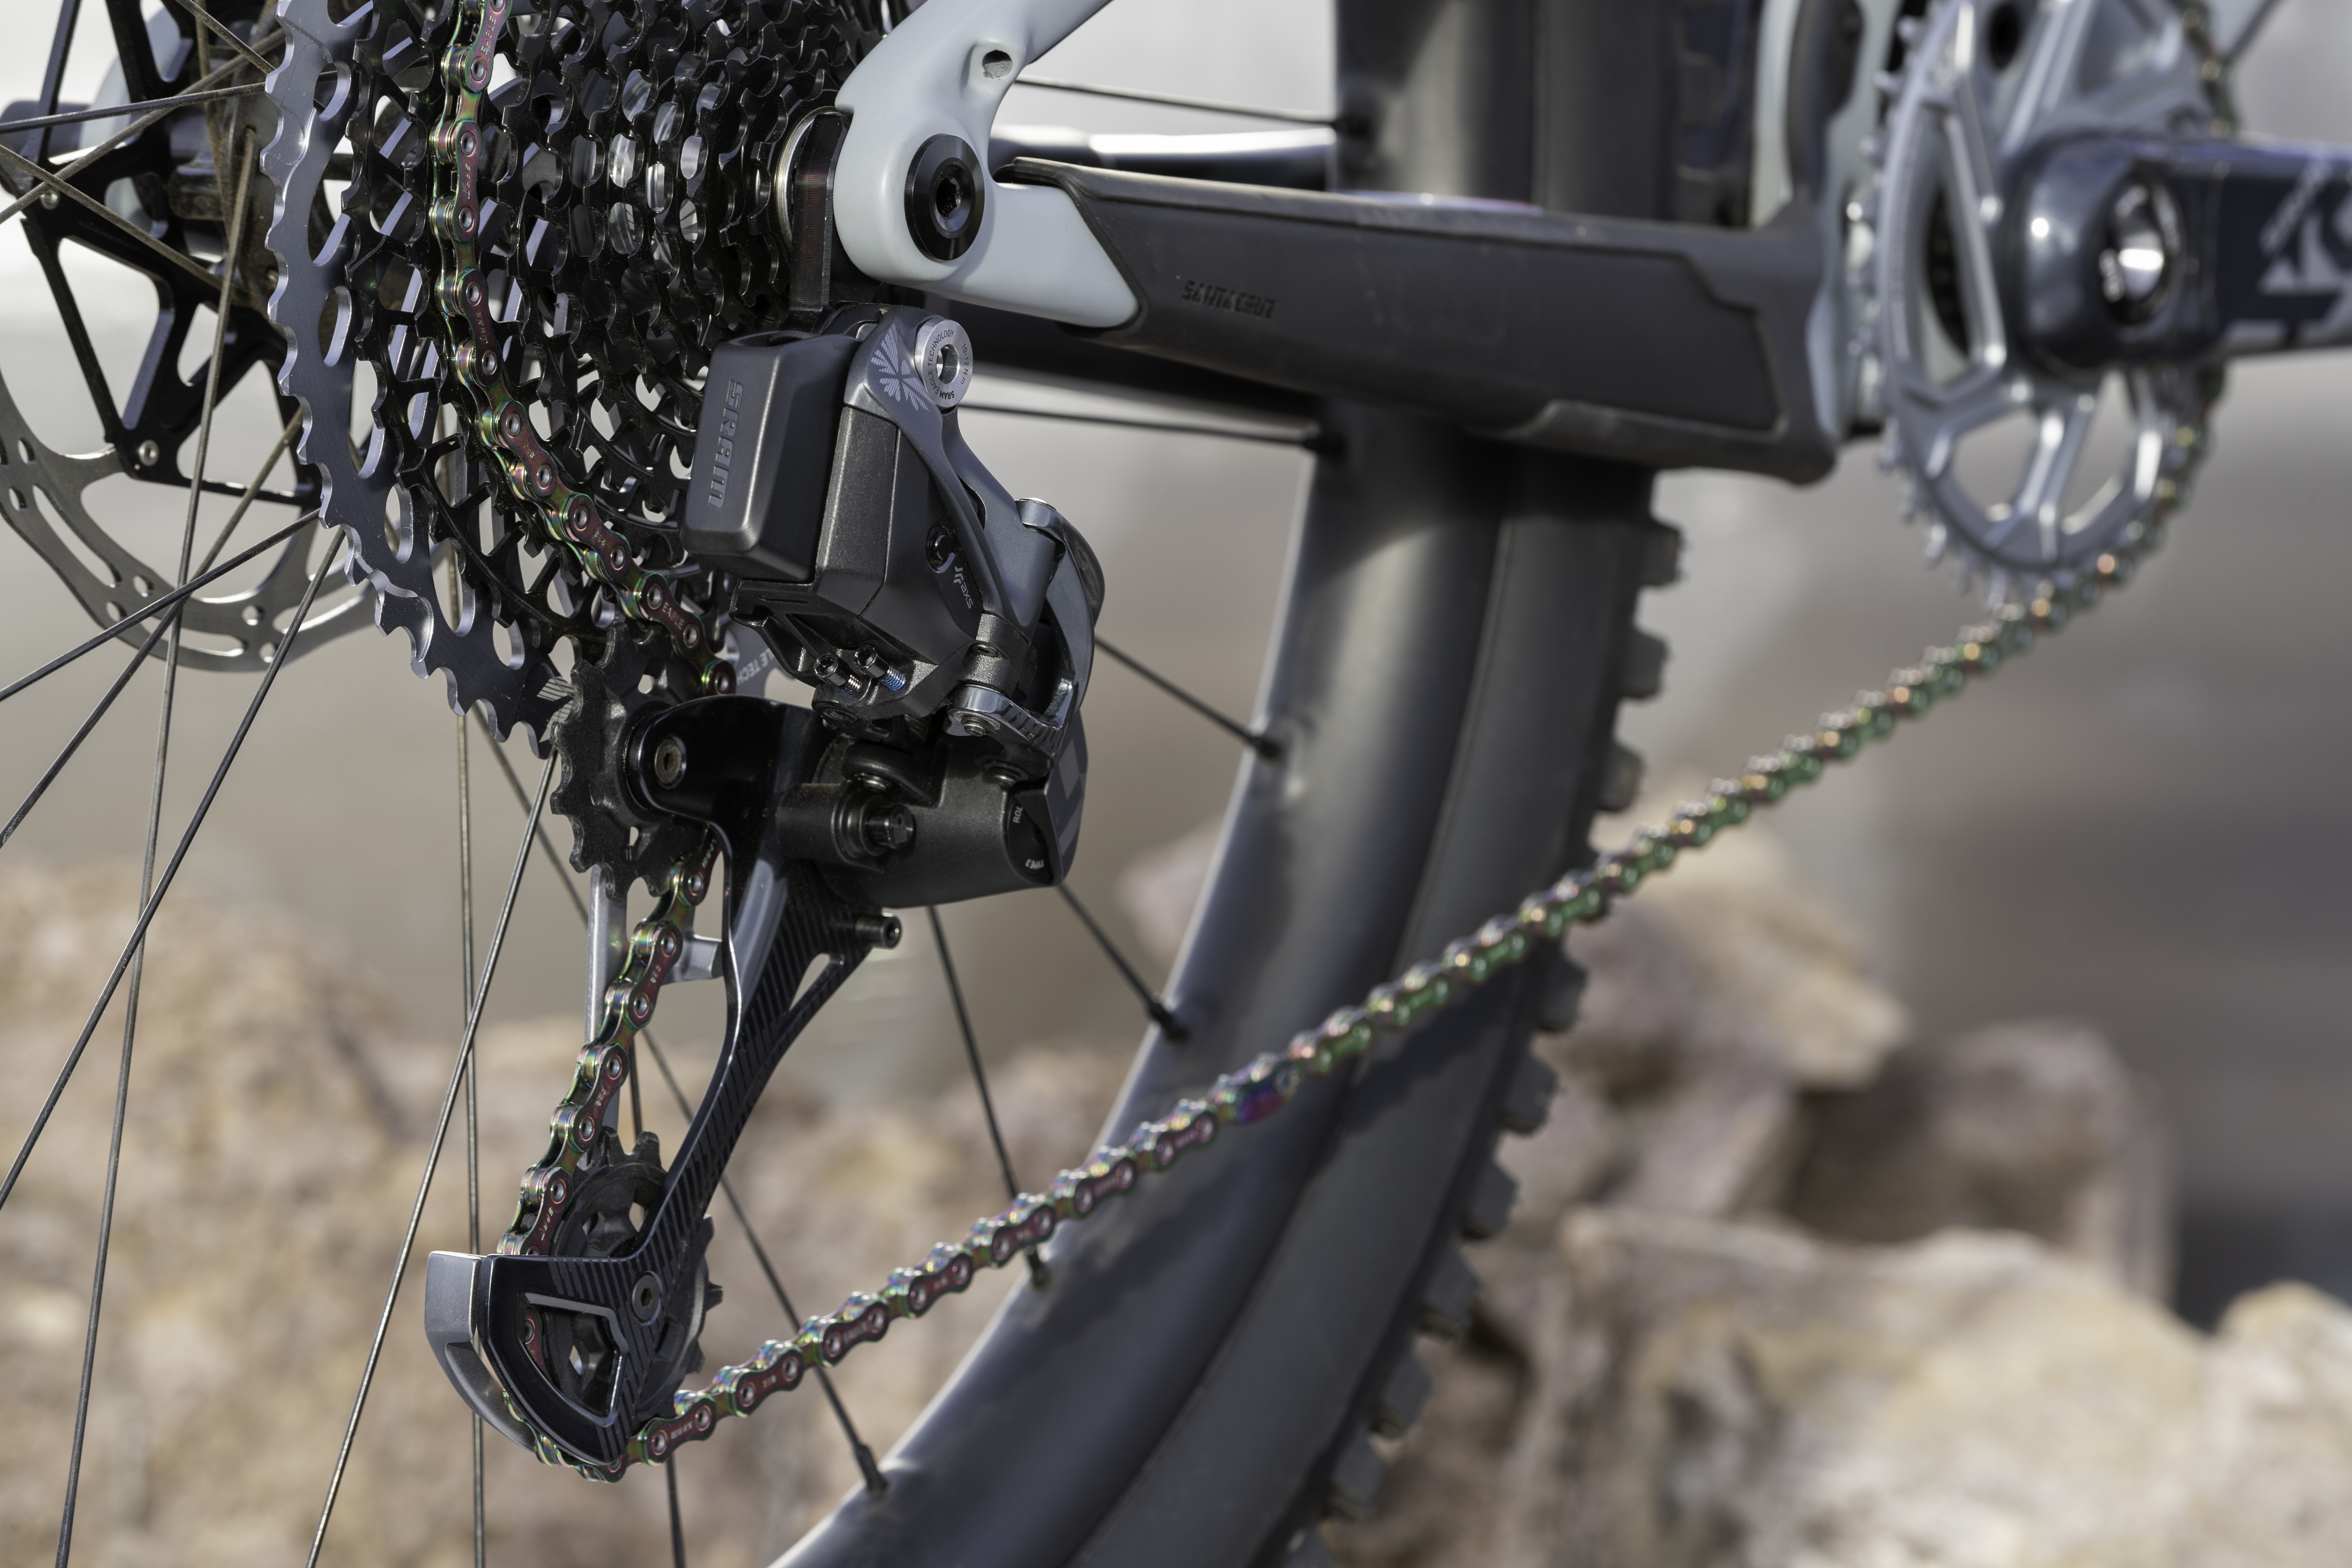 SRAM's AXS System: Why It Matters Even Though You Probably Can't Afford It